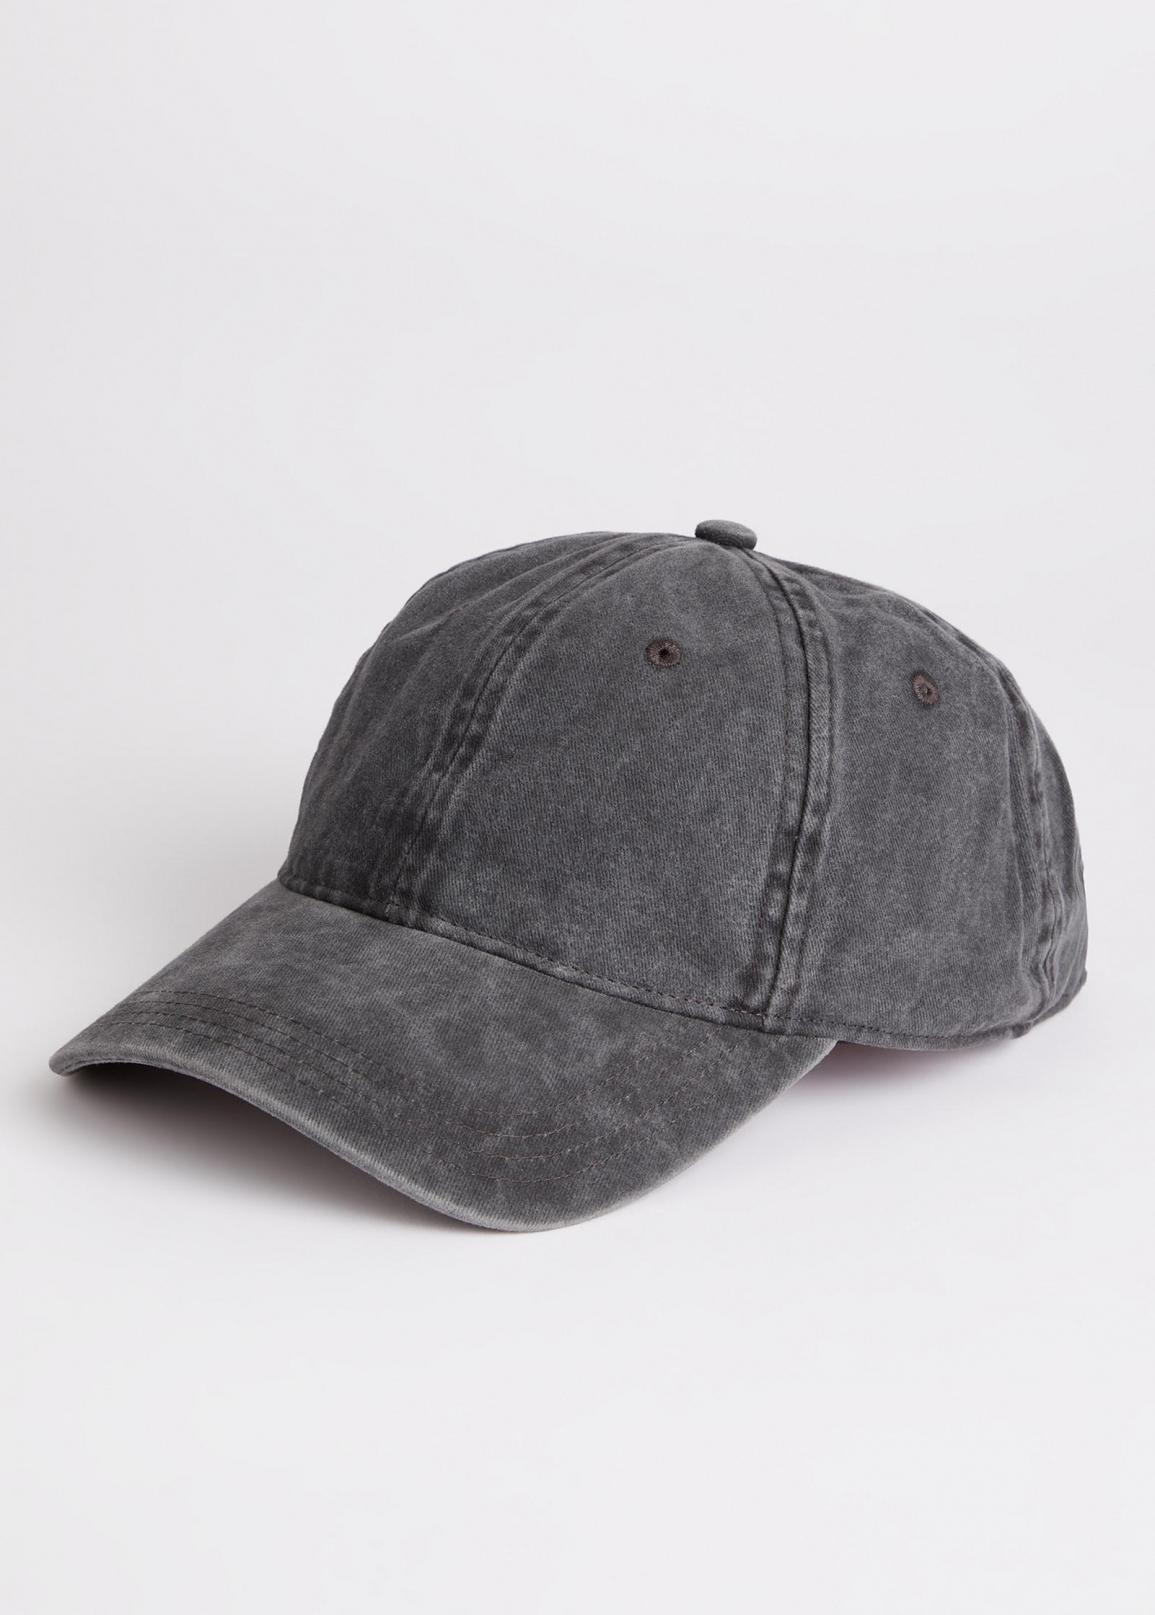 Wrangler® Washed Canvas Cap - Faded Black